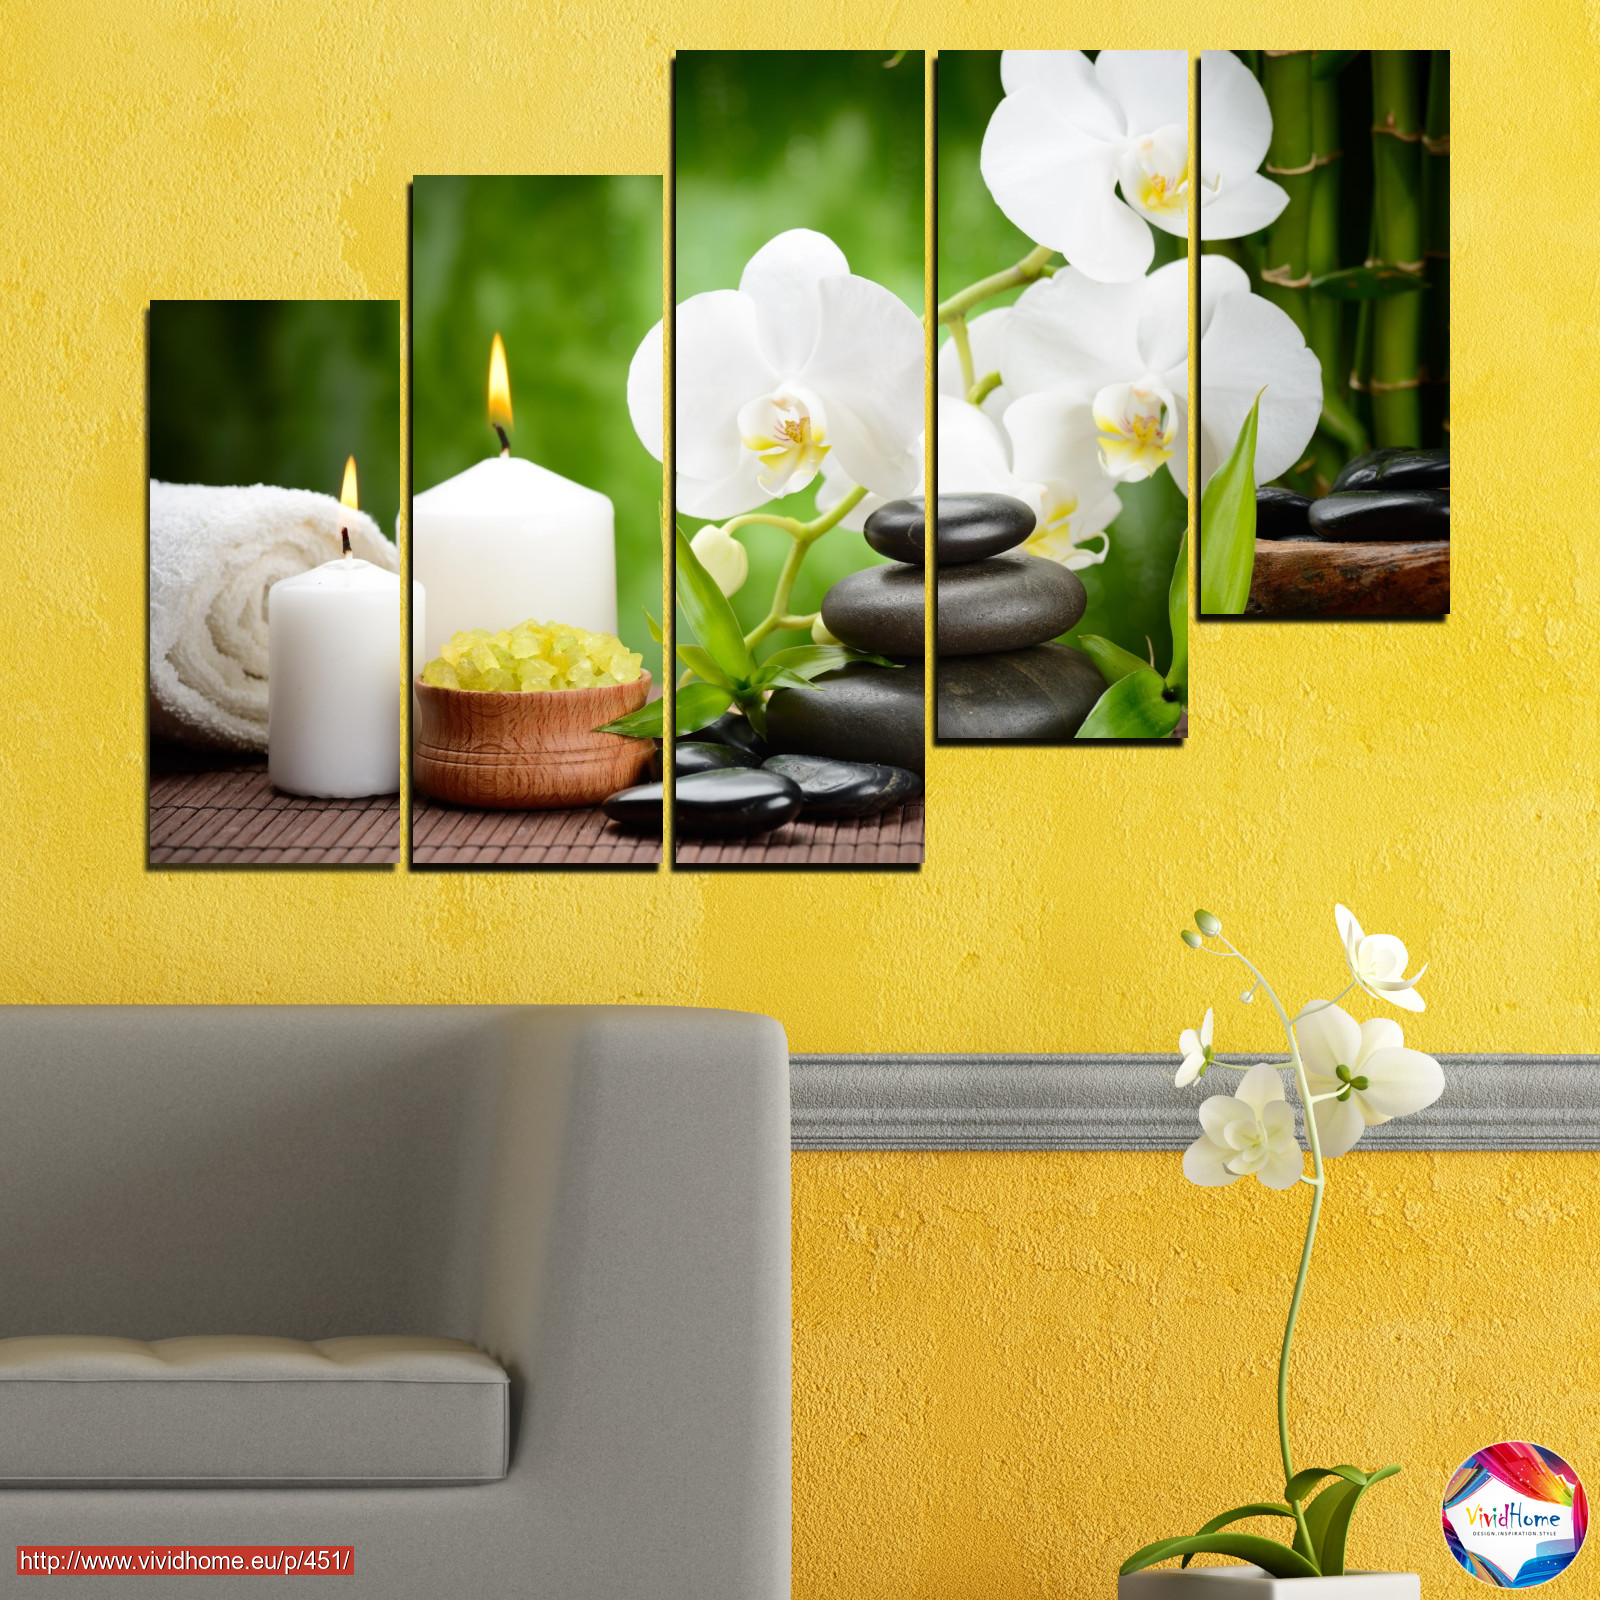 Orchid, Flowers, Feng shui, Zen, Stones, Spa, Candle №0451